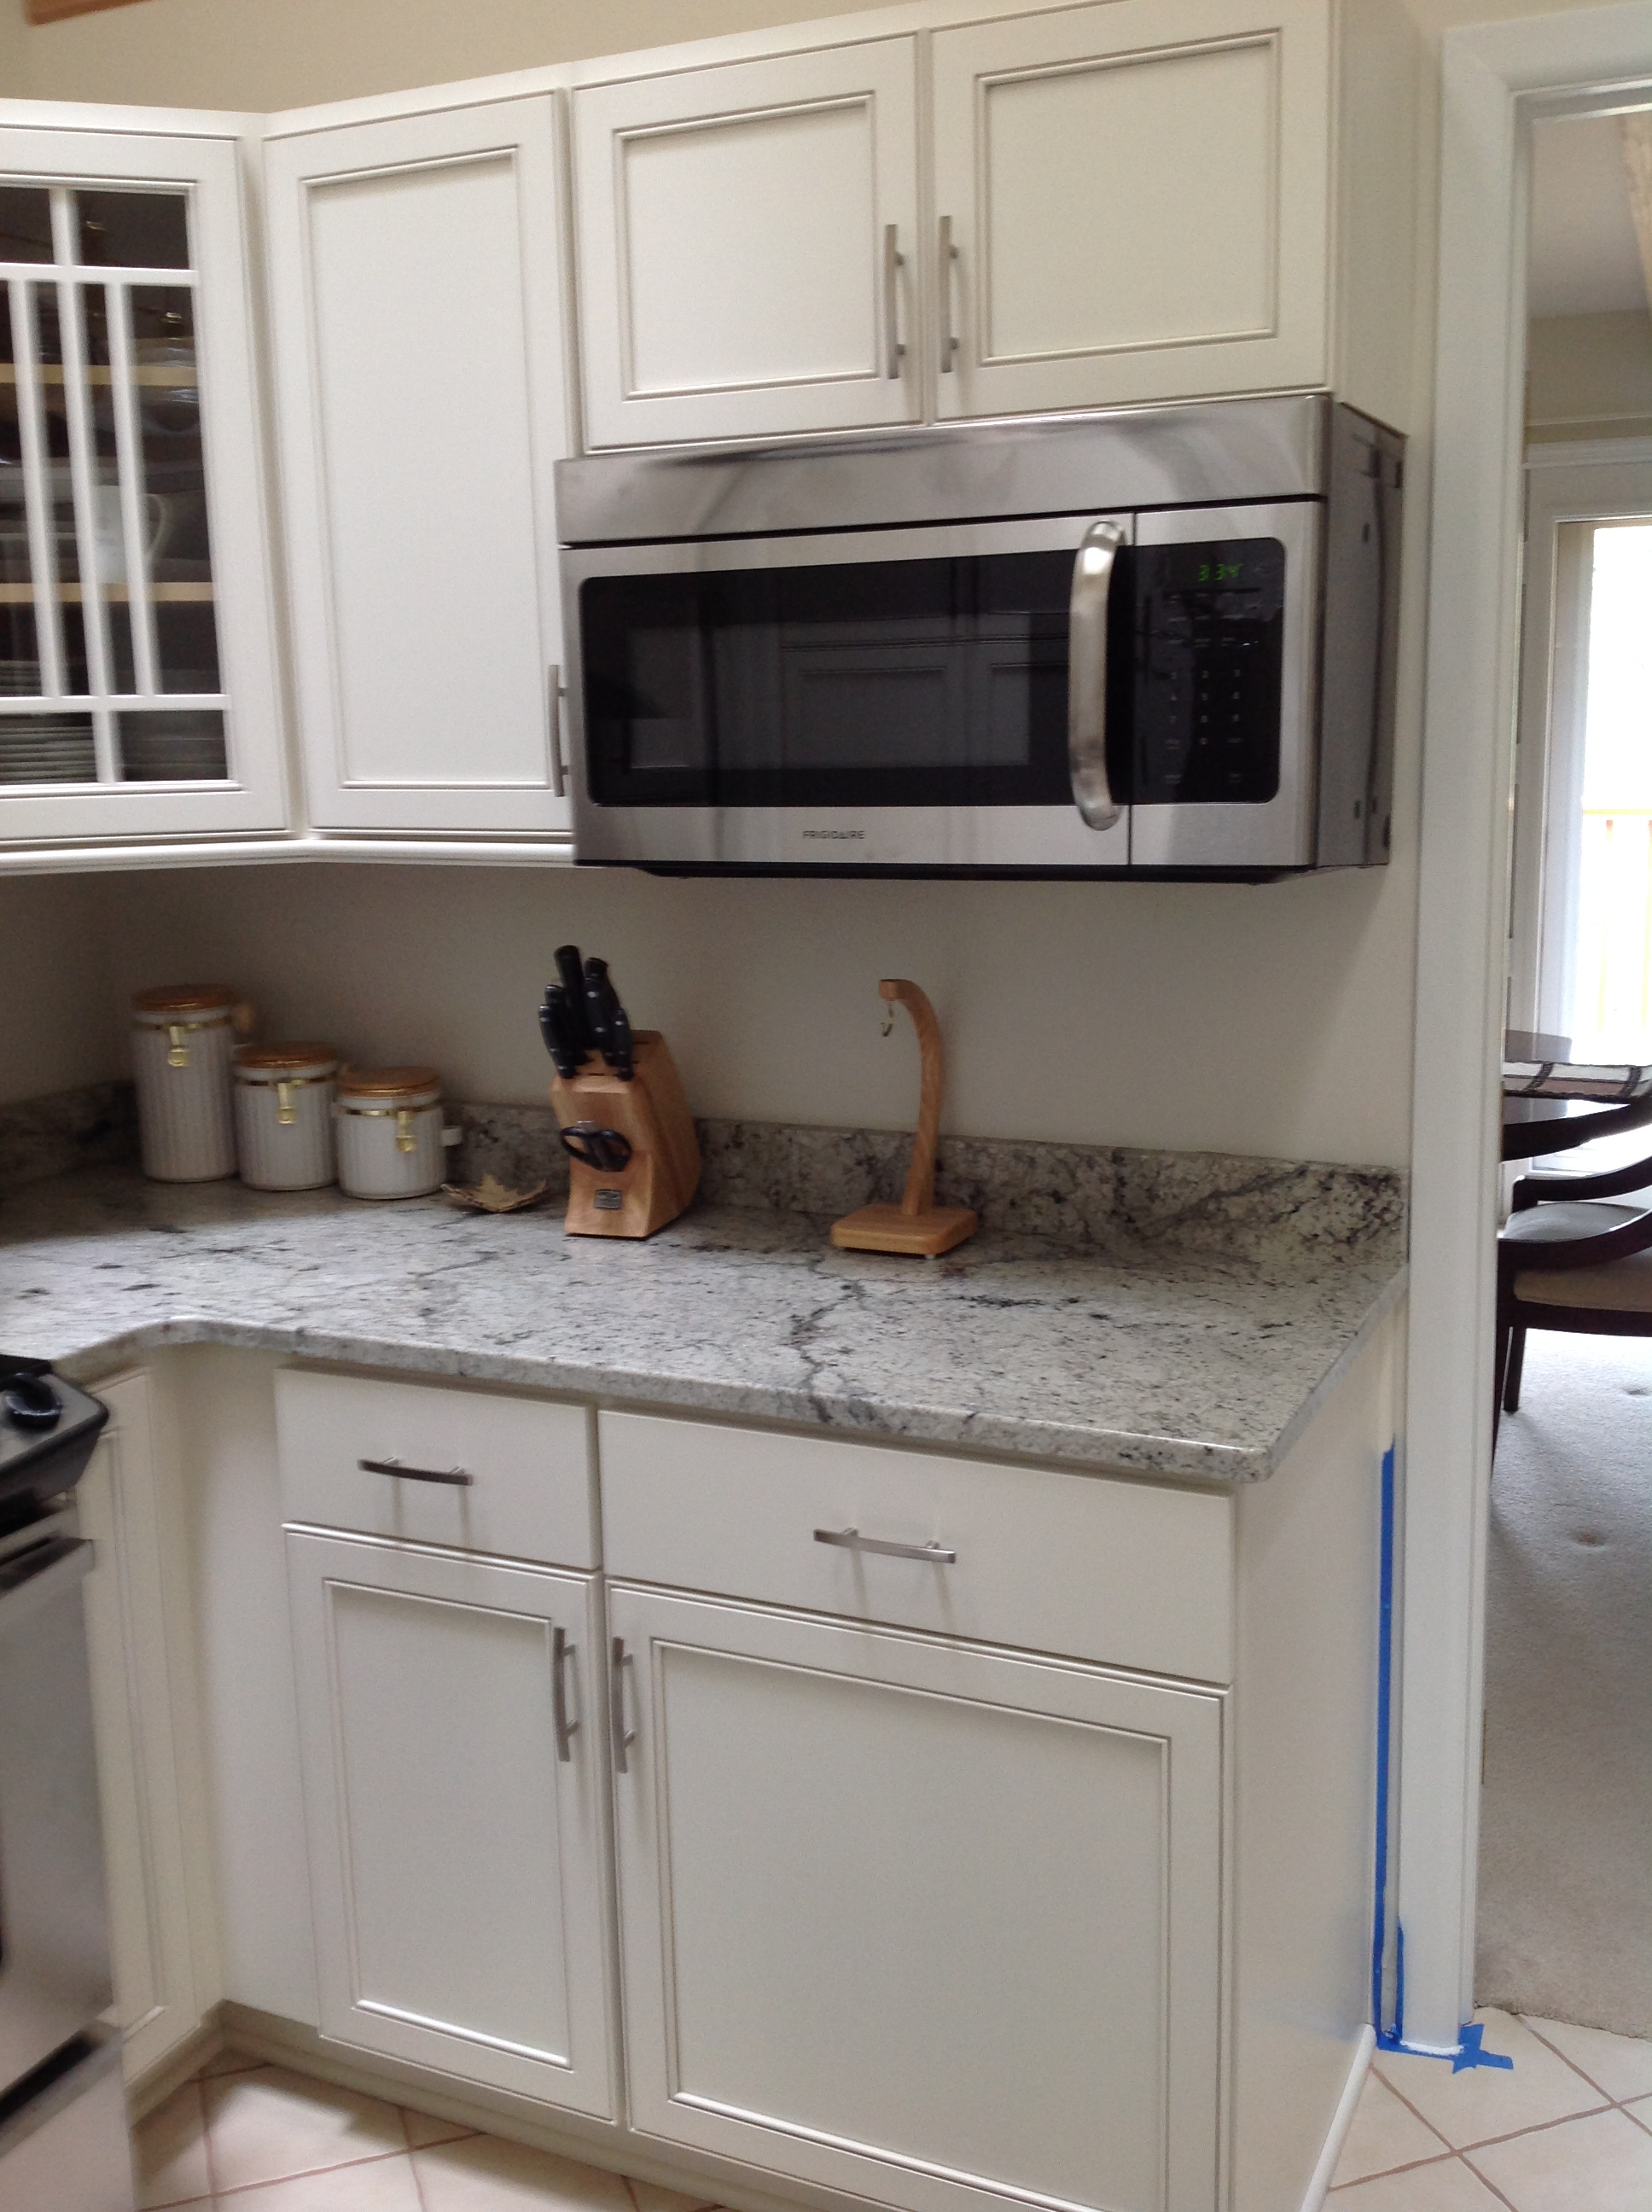 Remodel using our Dura Supreme Cabinetry line